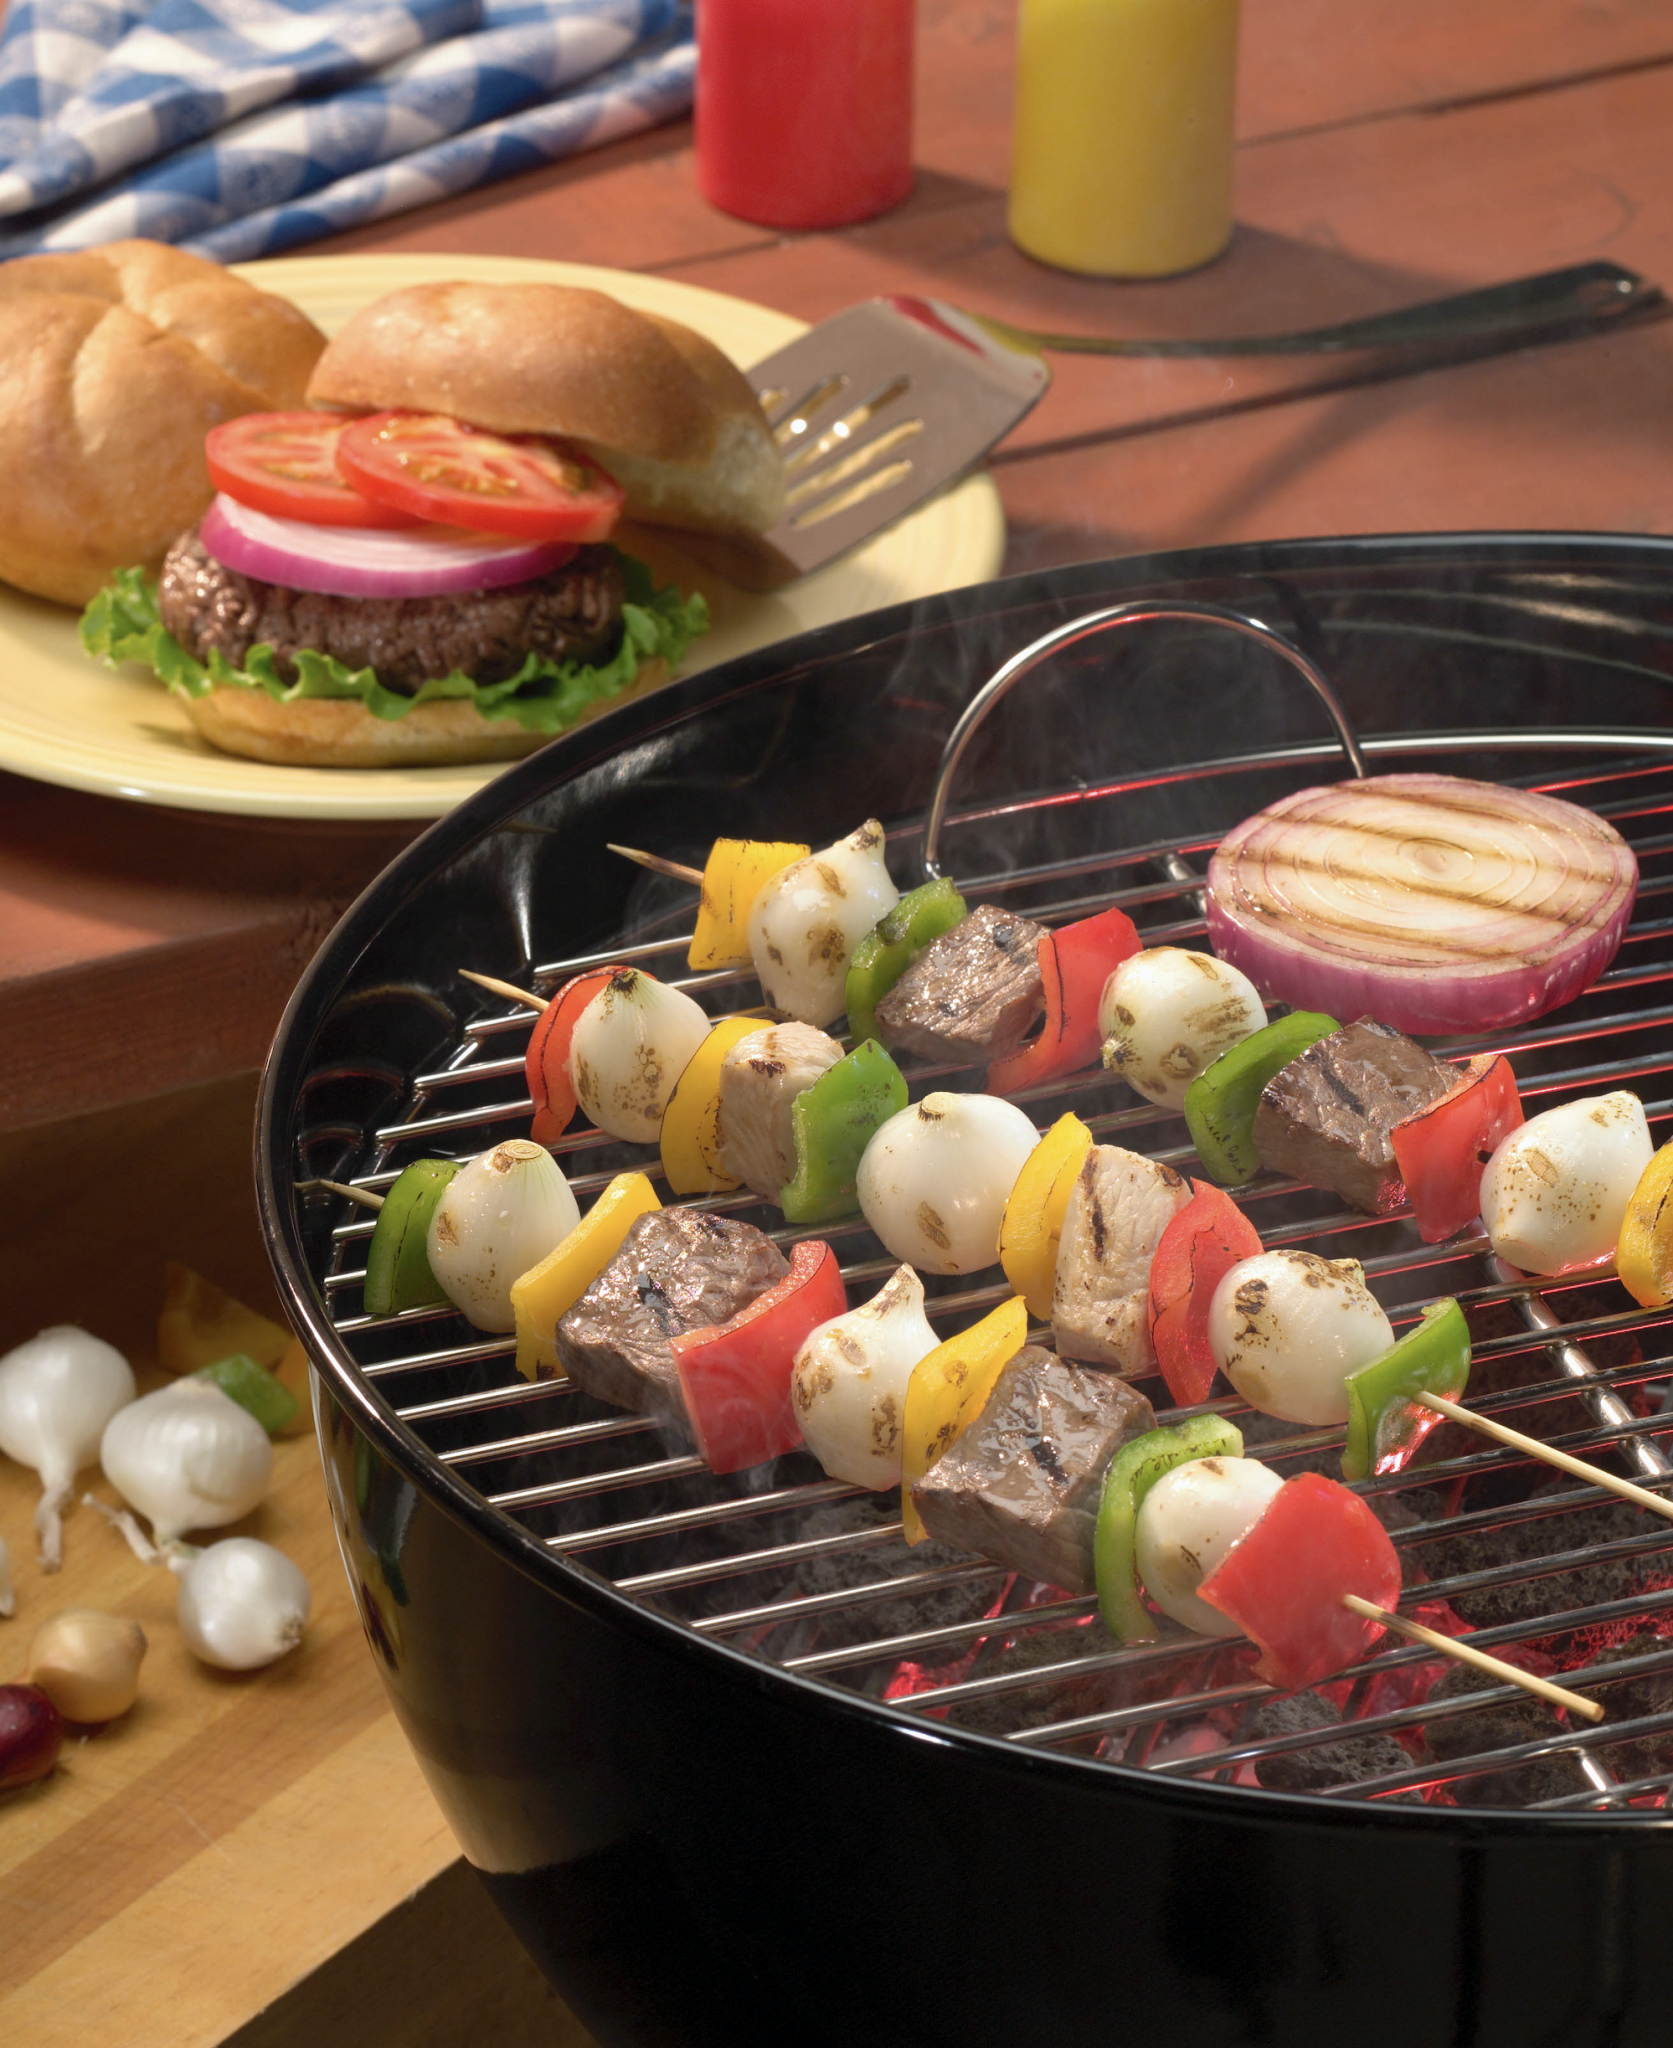 vegetable on skewers on a grill, hambuger on a plate on a picnic table